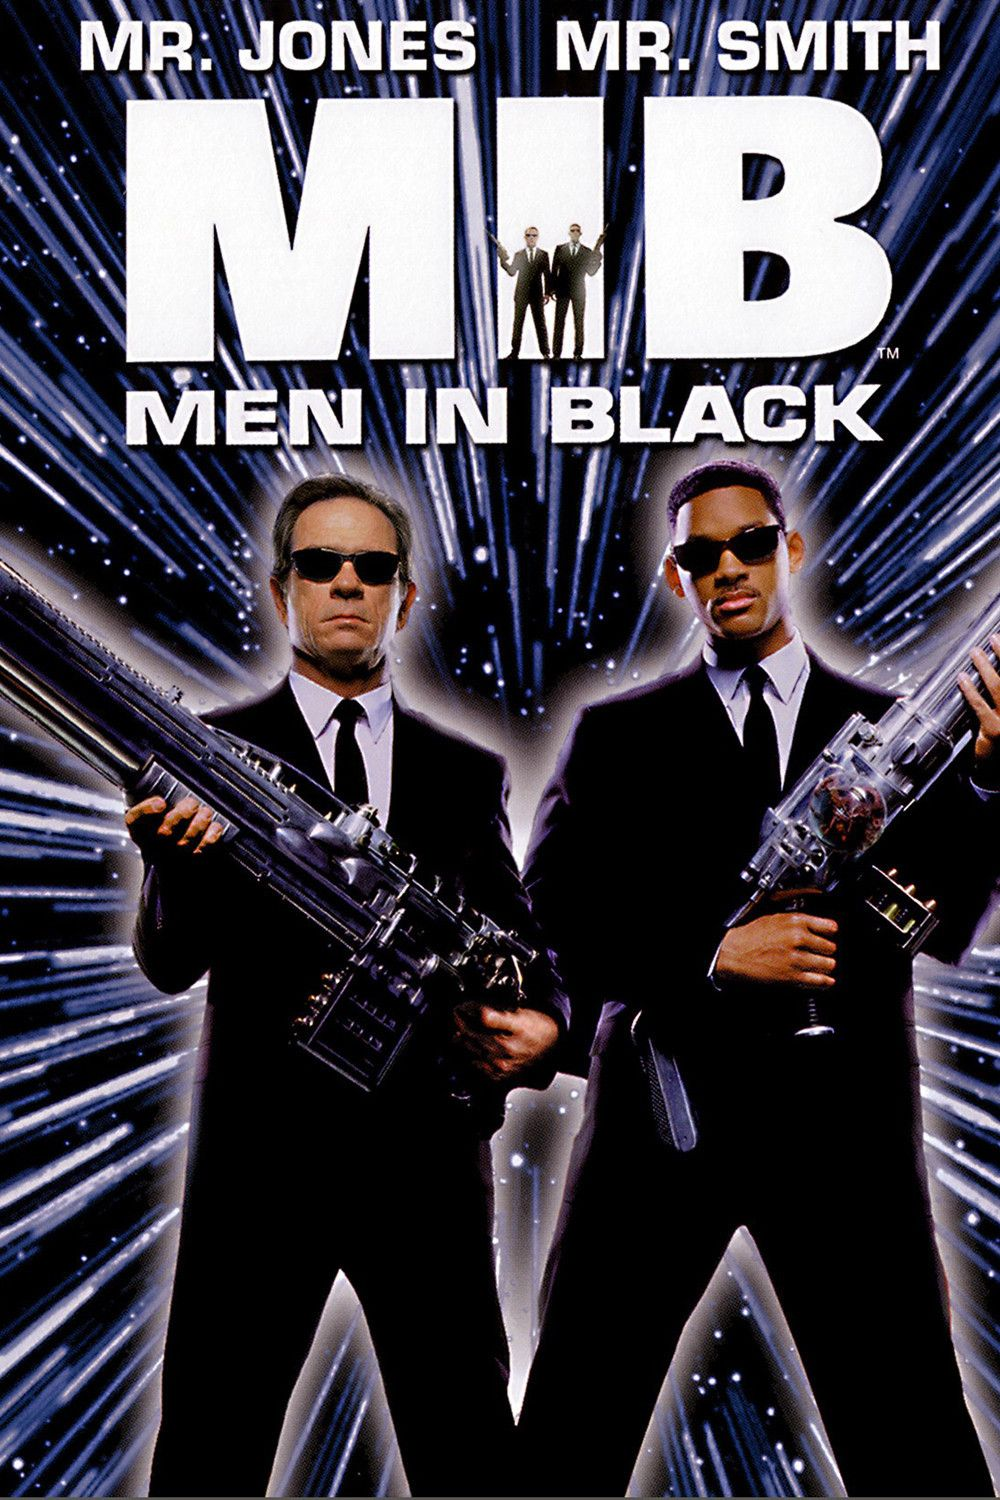 Men In Black 1997 Directed By Barry Sonnenfeld Comedy Sci Fi Alien Film Movie Tv Great Movies Good Movies